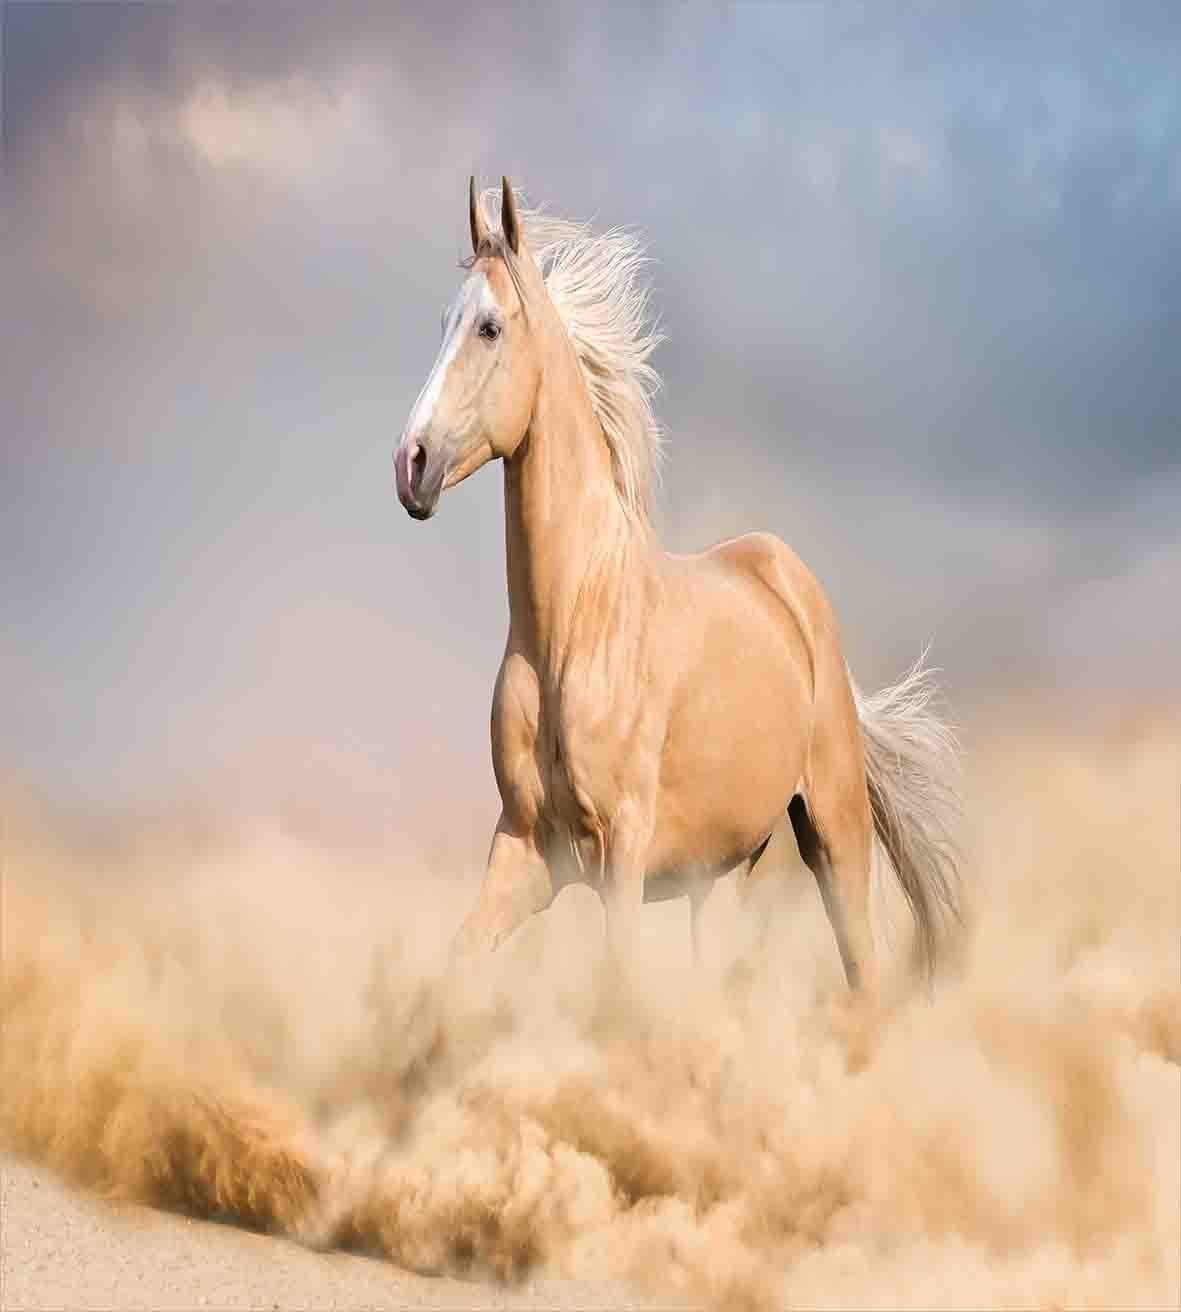 Duvet Cover Set Palomino Horse In Sand Desert With Long Blond Male Hair Power Wild Animal Theme 4 Piece Bedding Set Bedding Sets Aliexpress